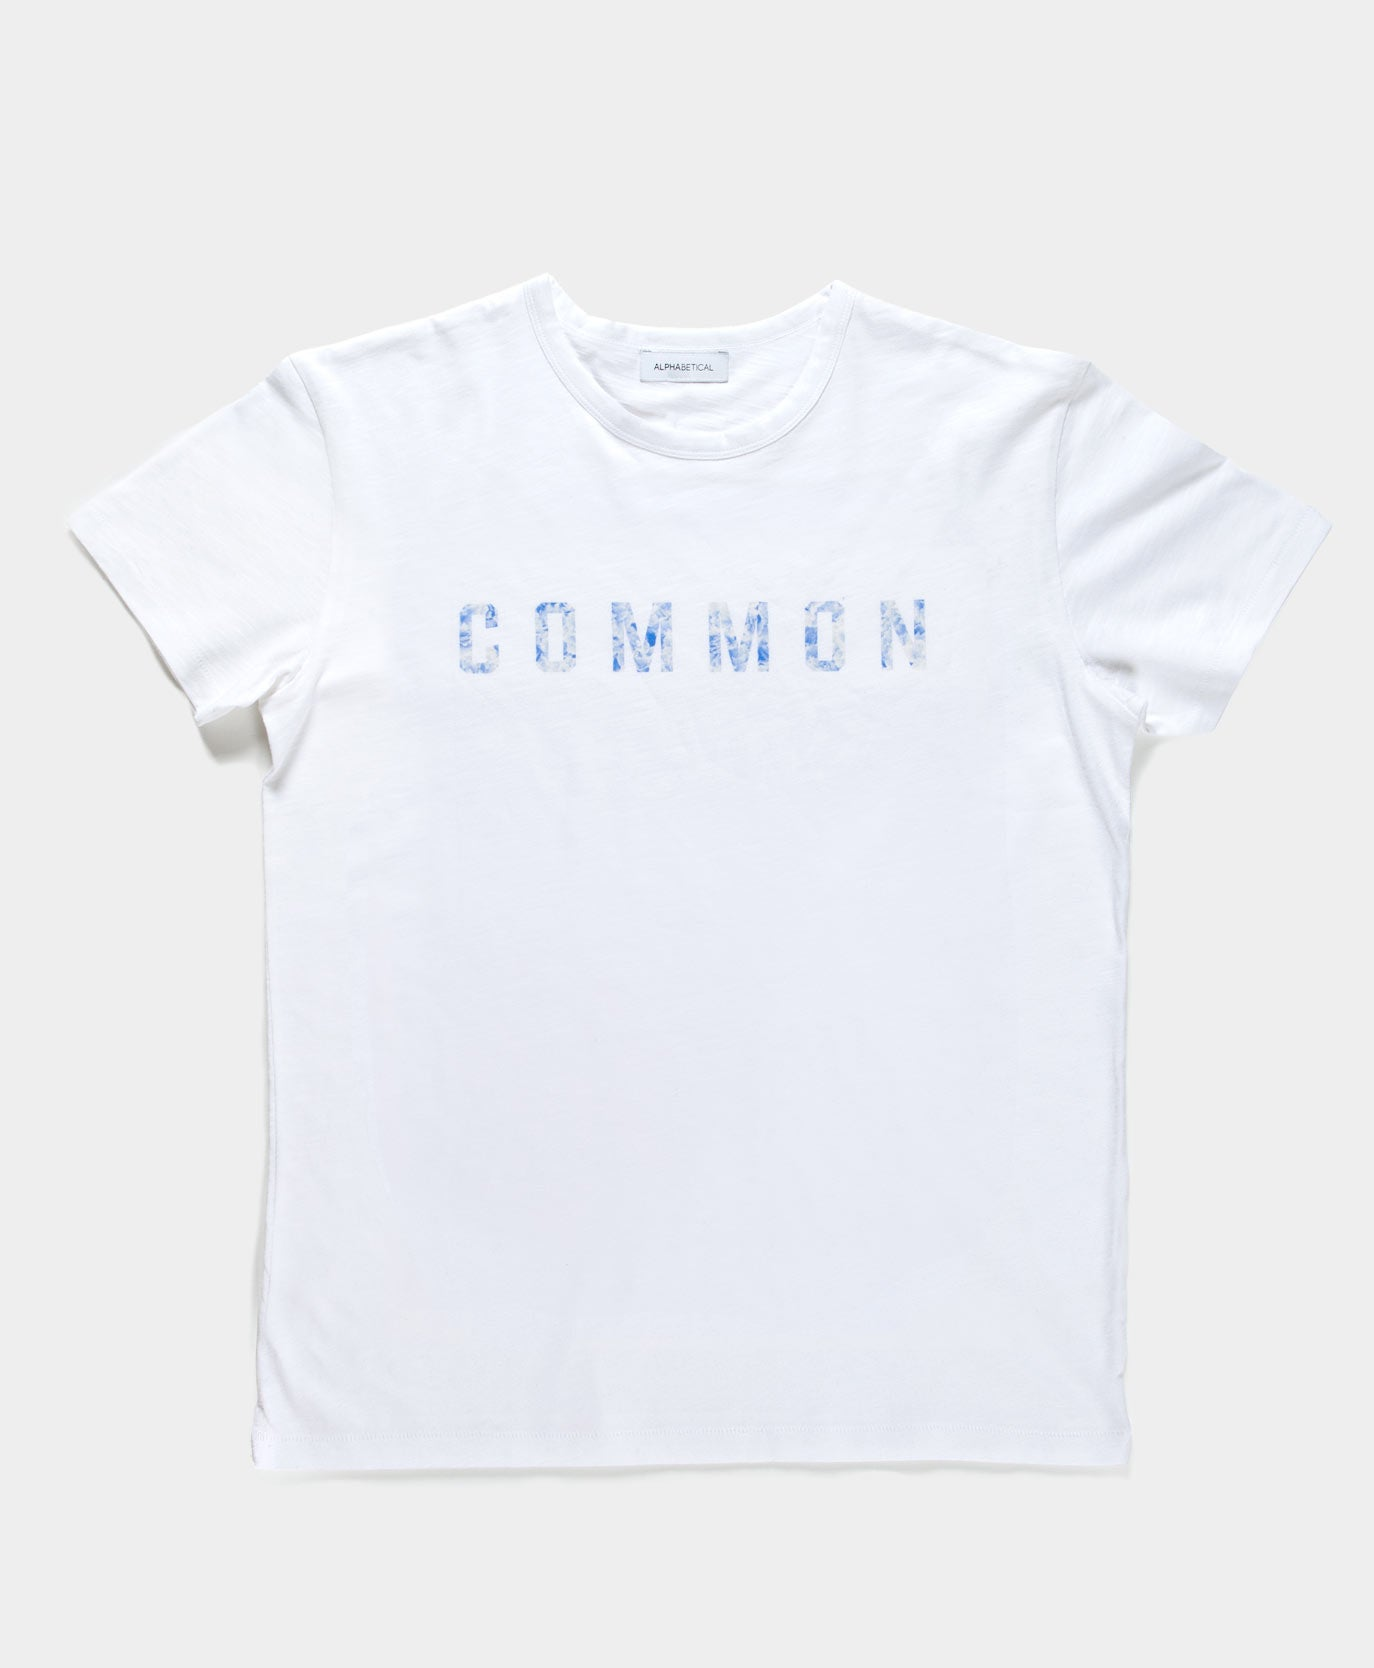 Image of Common Life Tee